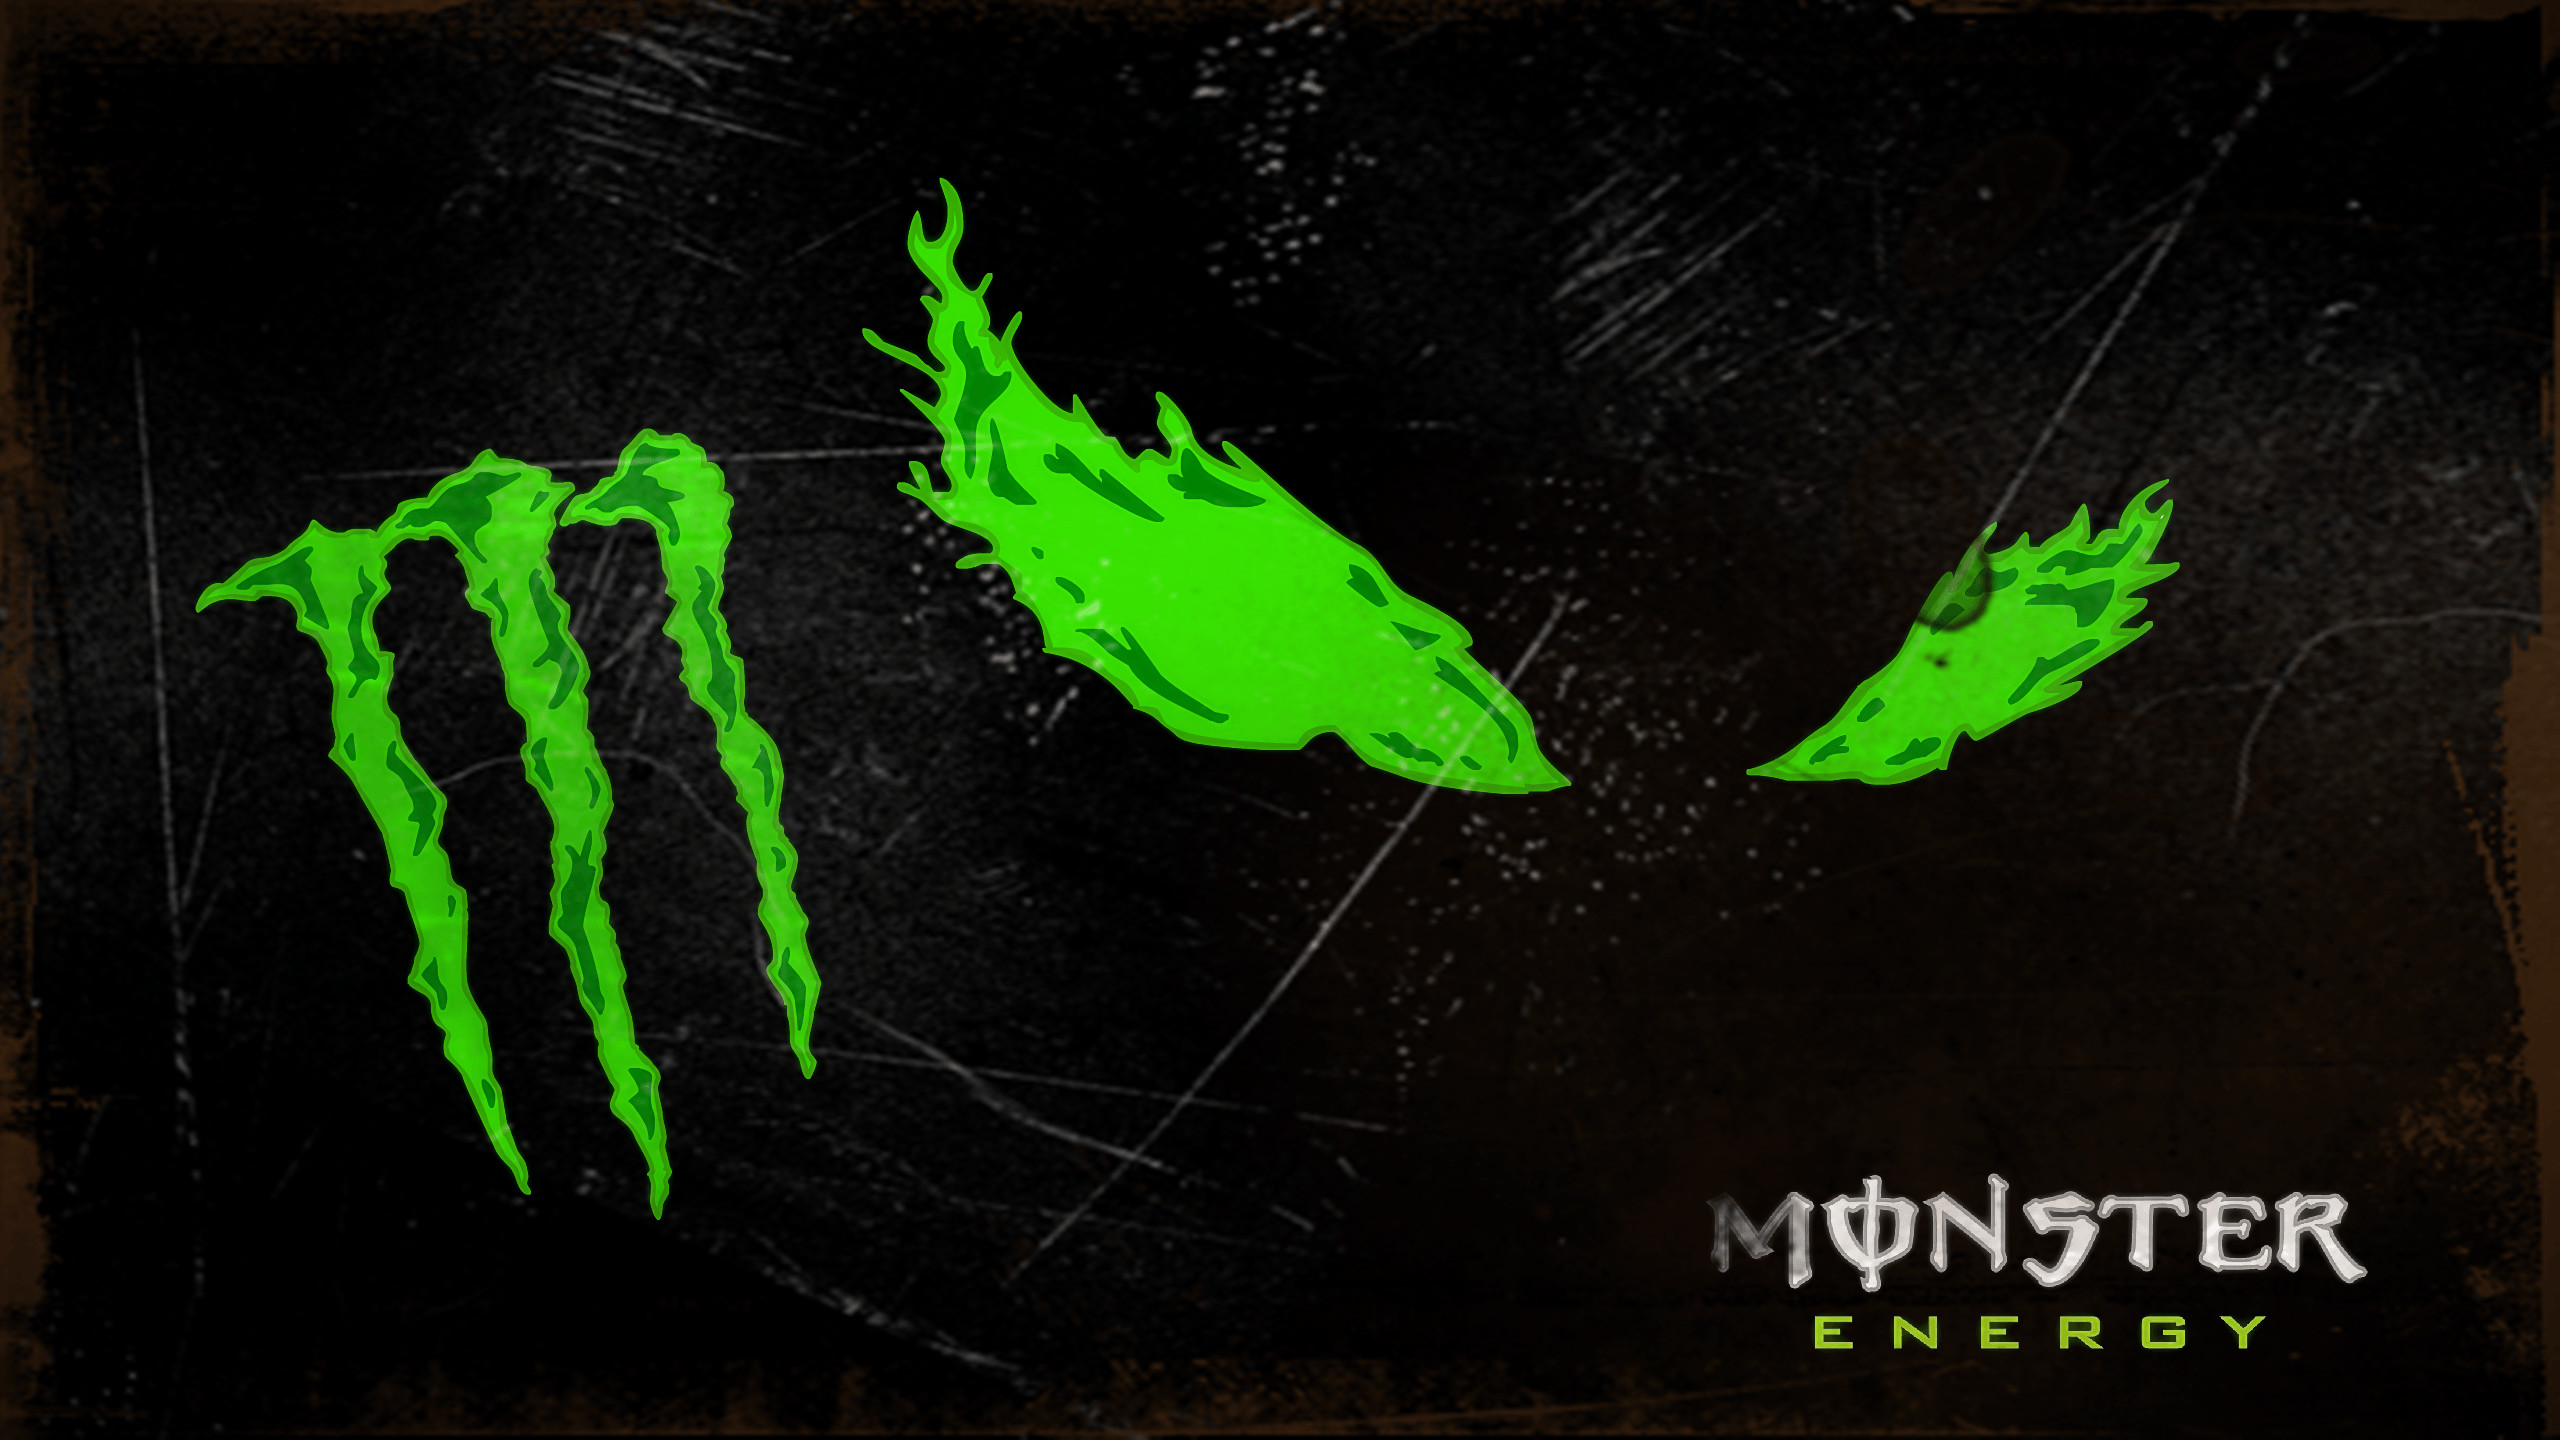 2560x1440 monster energy hd wallpaper